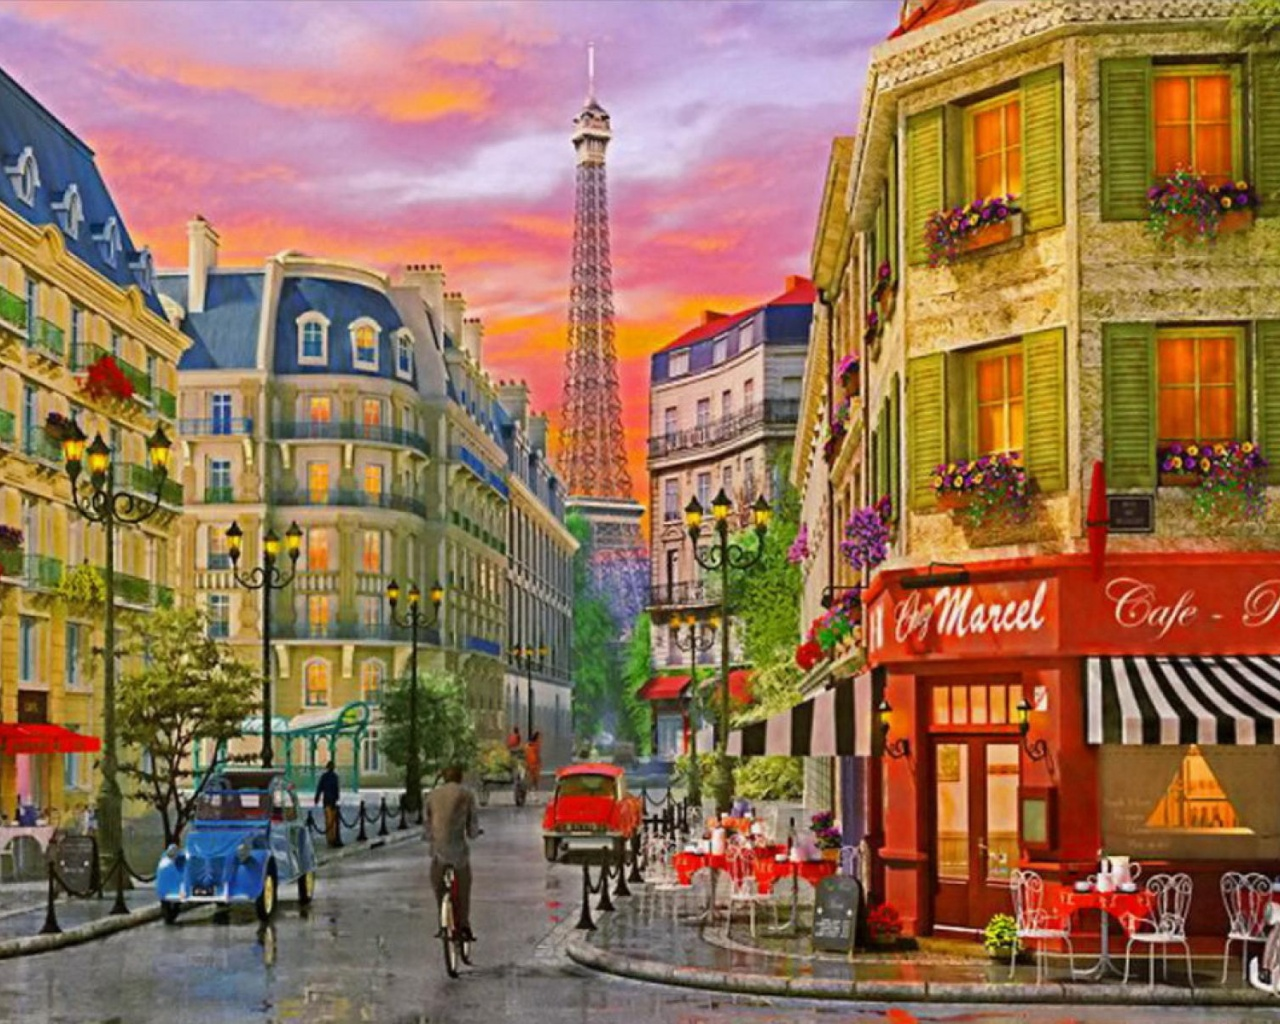 Hd Painting Wallpapers Download 1280x1024 Cafe Restaurant Eiffel Tower Desktop Pc And Mac